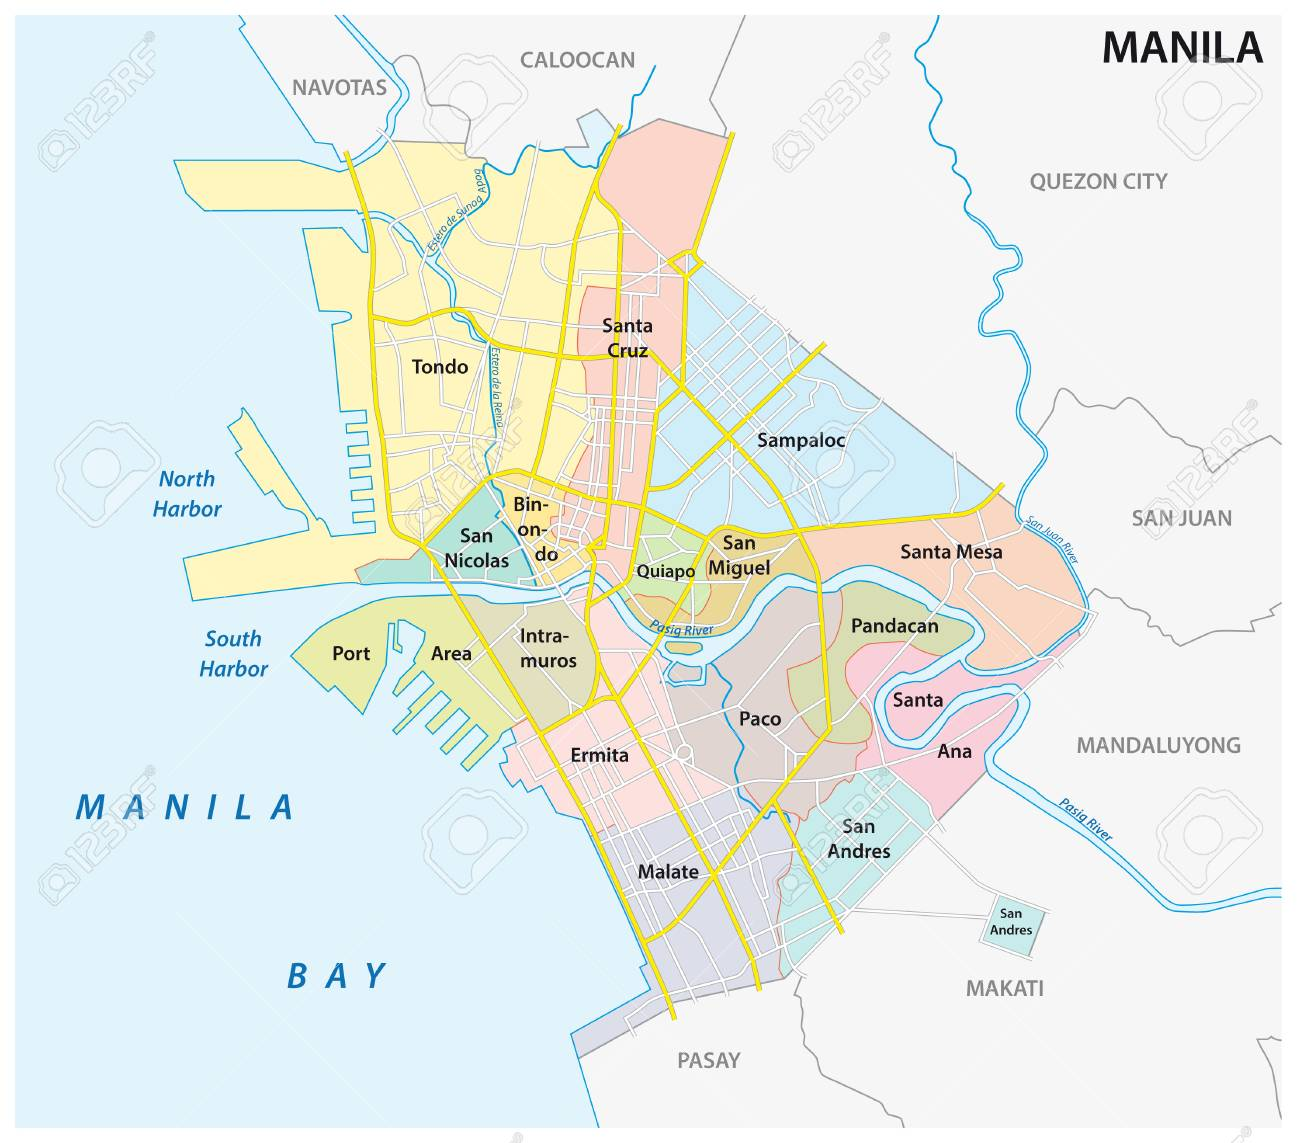 Manila Administrative Political And Road Map Philippines Royalty